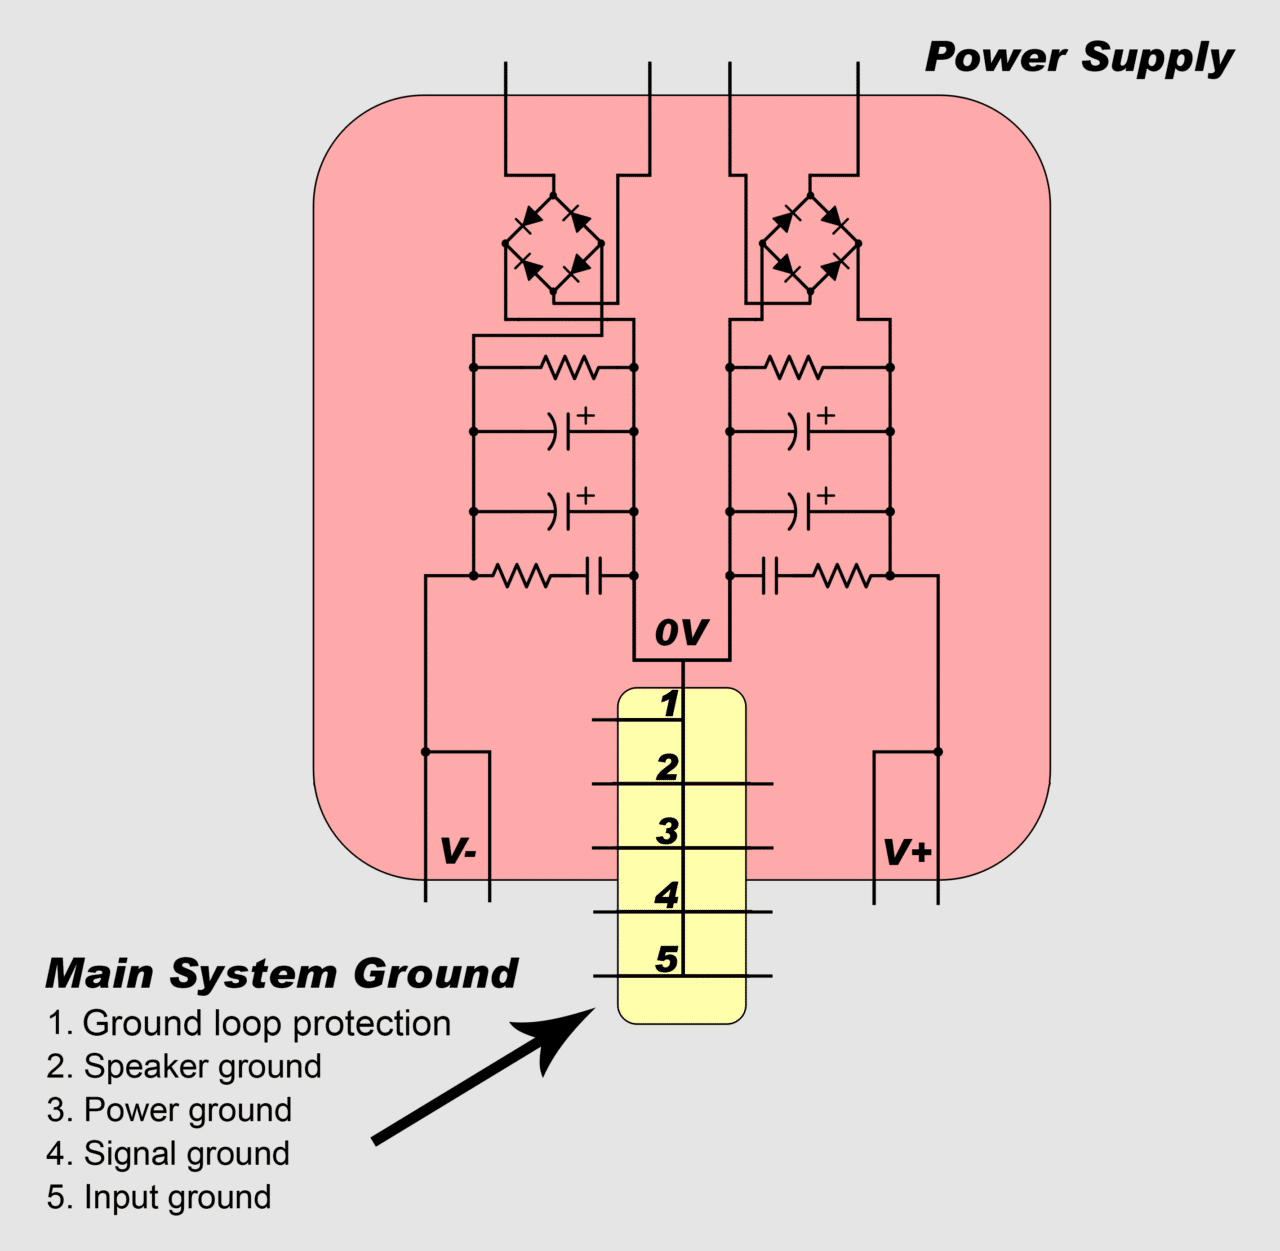 A Complete Guide To Design And Build Hi Fi Lm3886 Amplifier Short Circuit Damage Find With Wiring Diagram Images Main System Ground So That Higher Current Grounds Are Closer The Reservoir Capacitors Below Shows How Order Connections